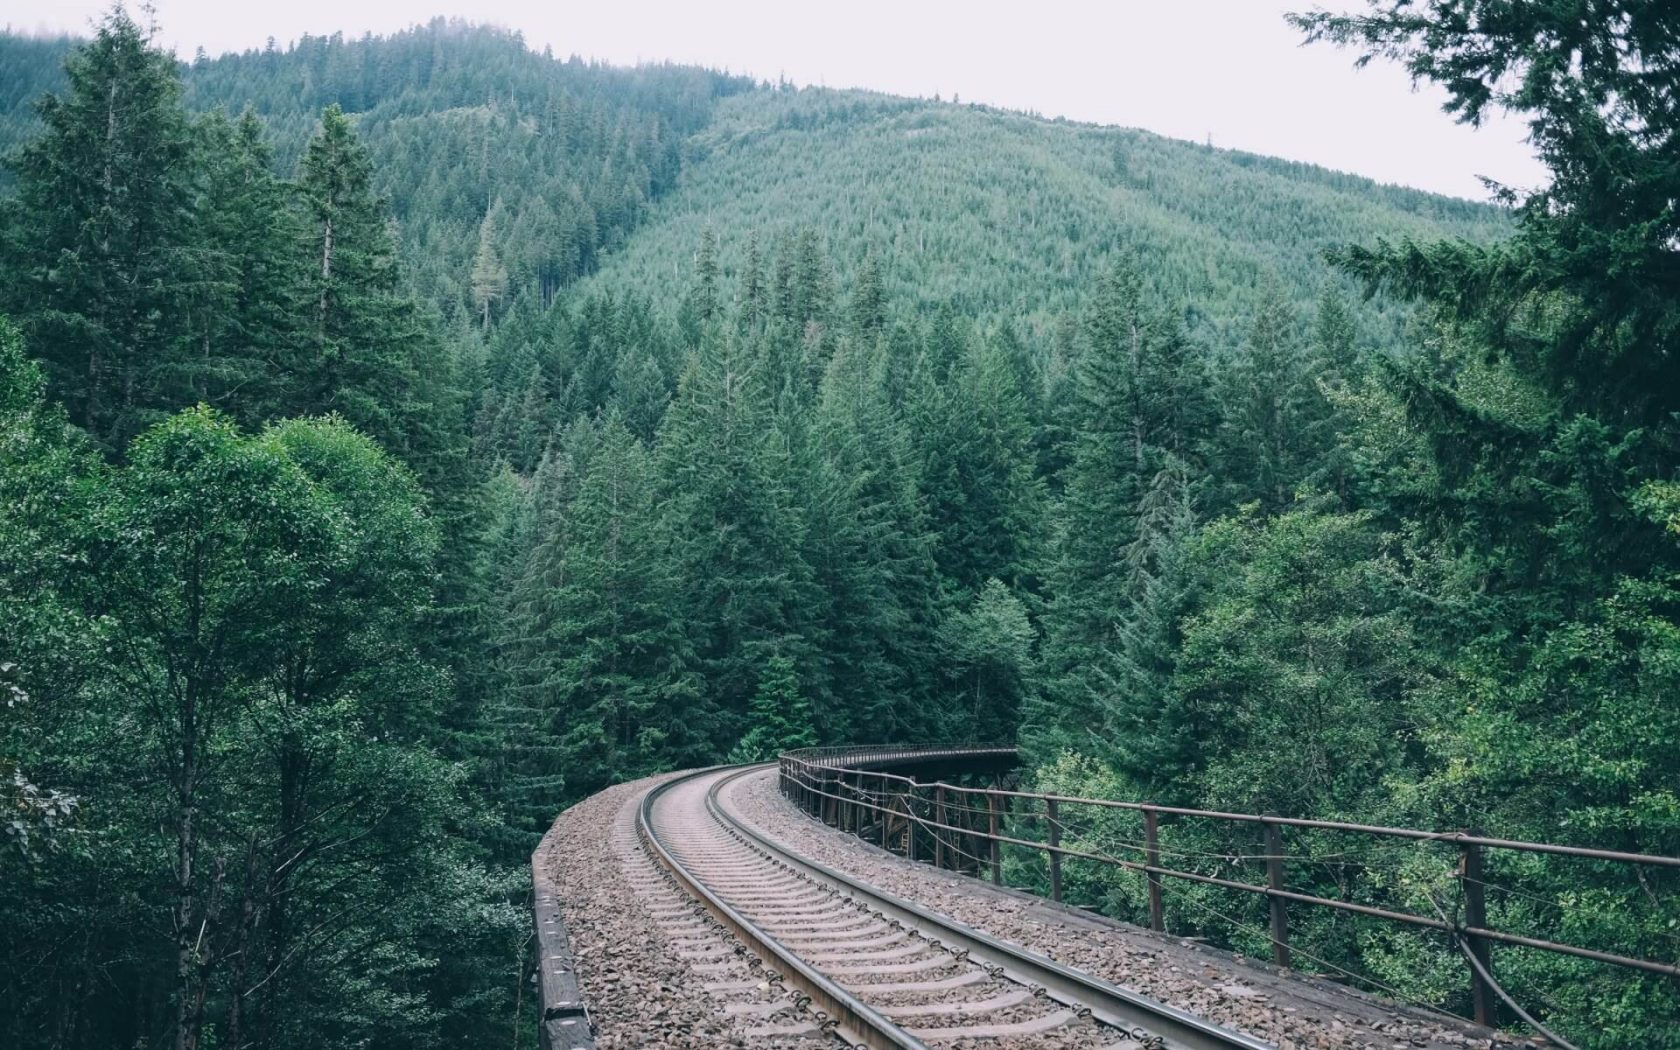 Hd Nature Phone Wallpapers Train Track Wallpaper Background Hd Wallpaper Background